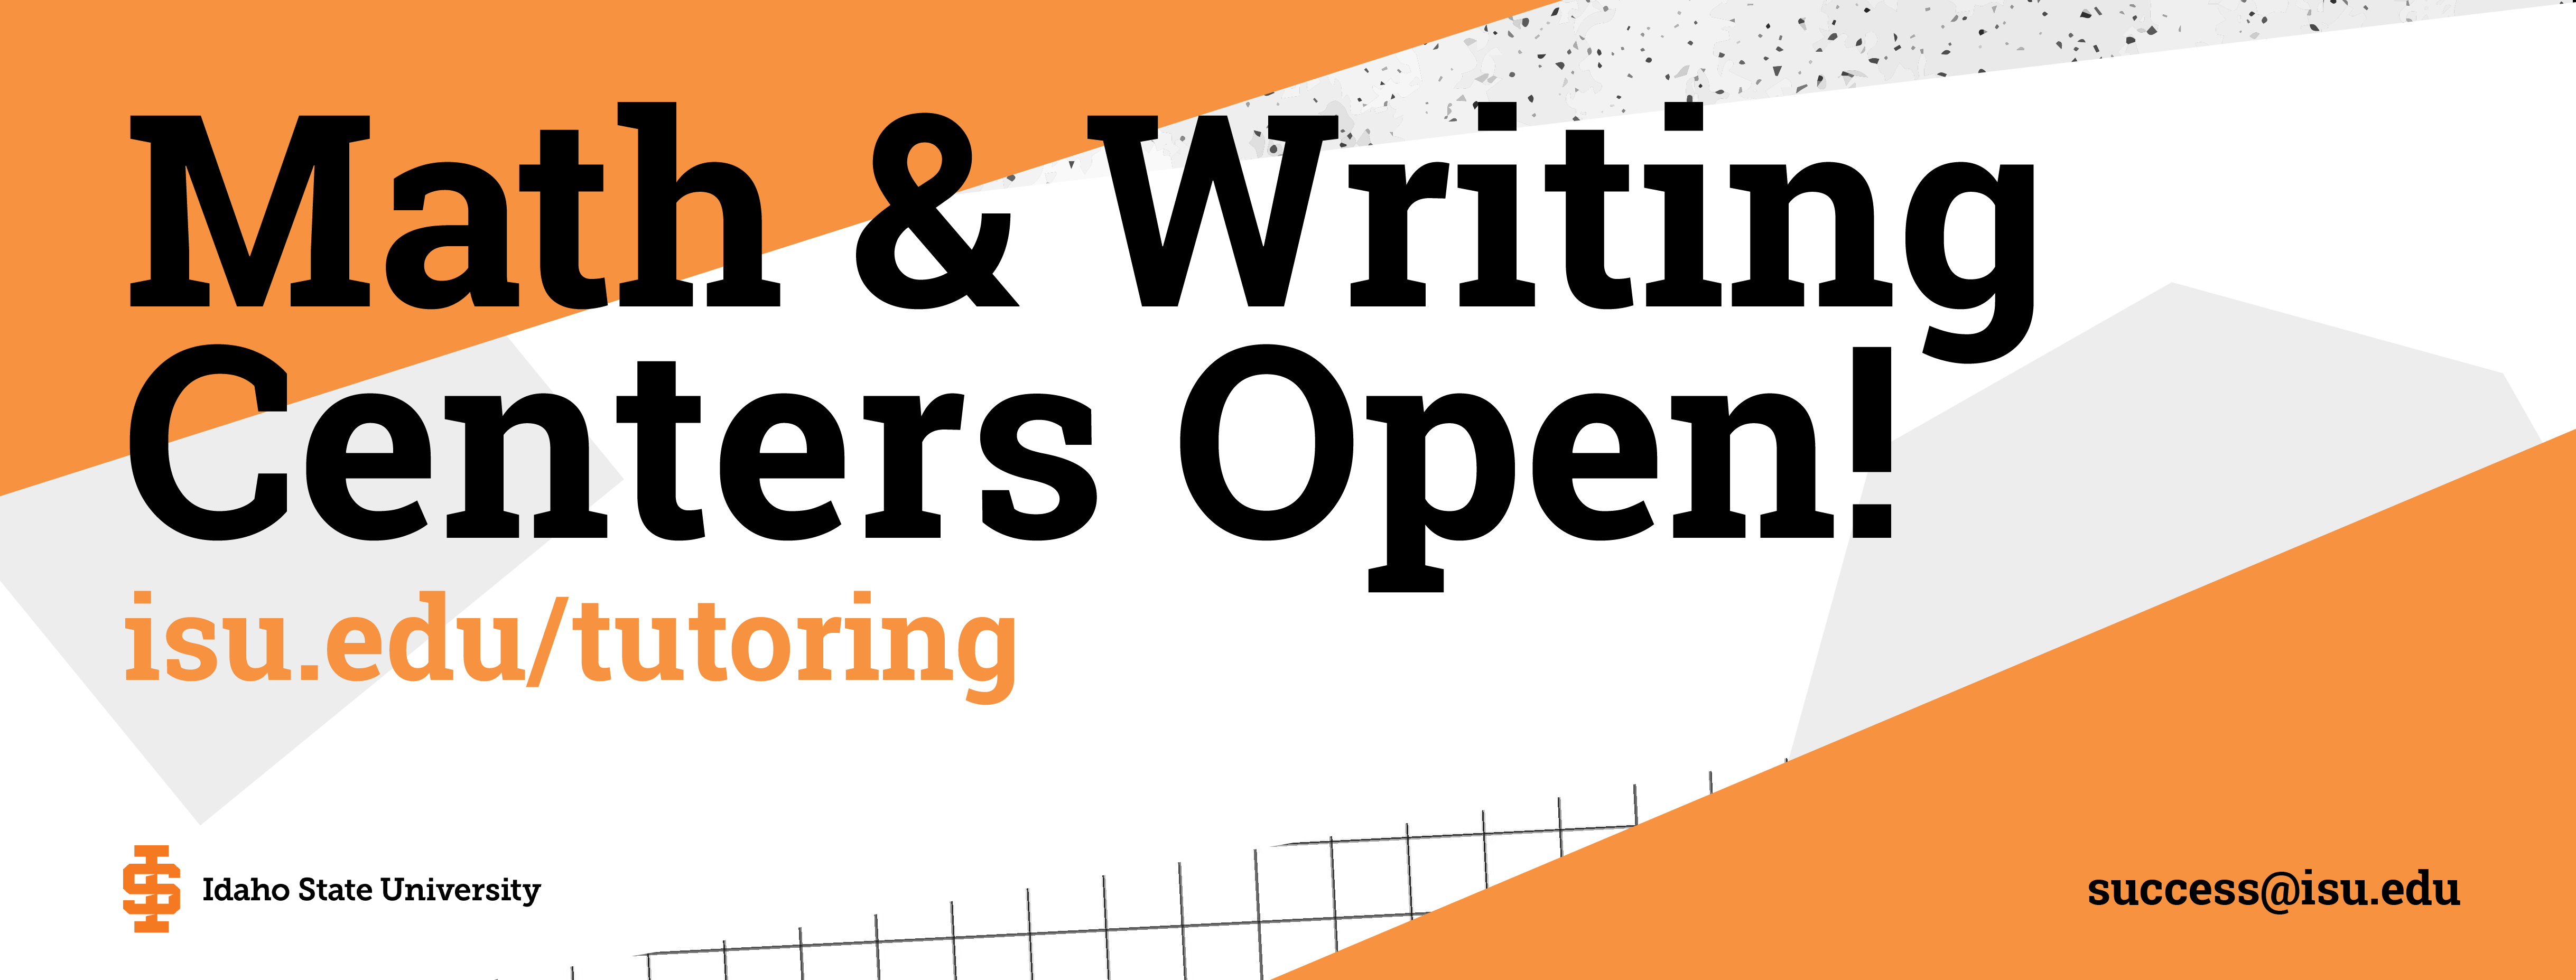 The math and writing center are open for the fall semester, visit isu.edu/tutoring for more informatin